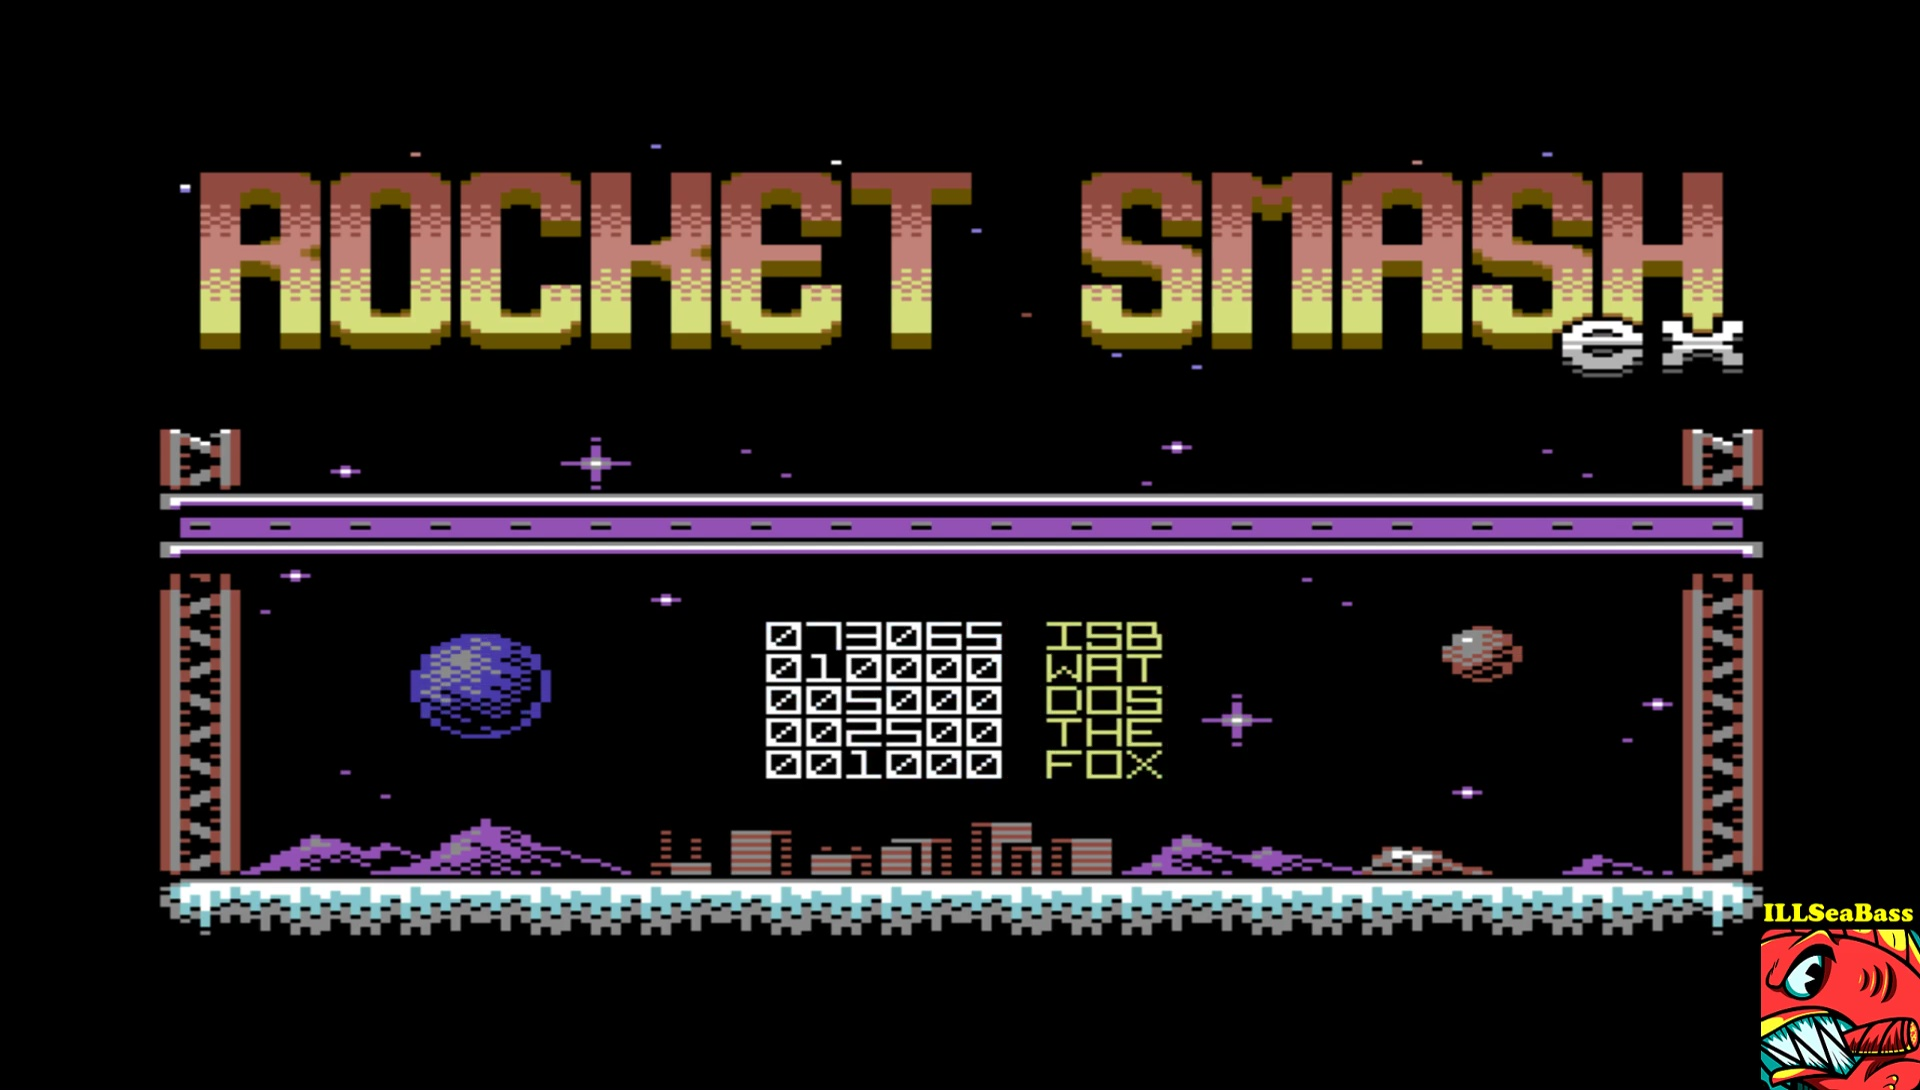 ILLSeaBass: Rocket Smash EX [Story: Normal] (Commodore 64 Emulated) 73,065 points on 2017-04-15 01:15:46